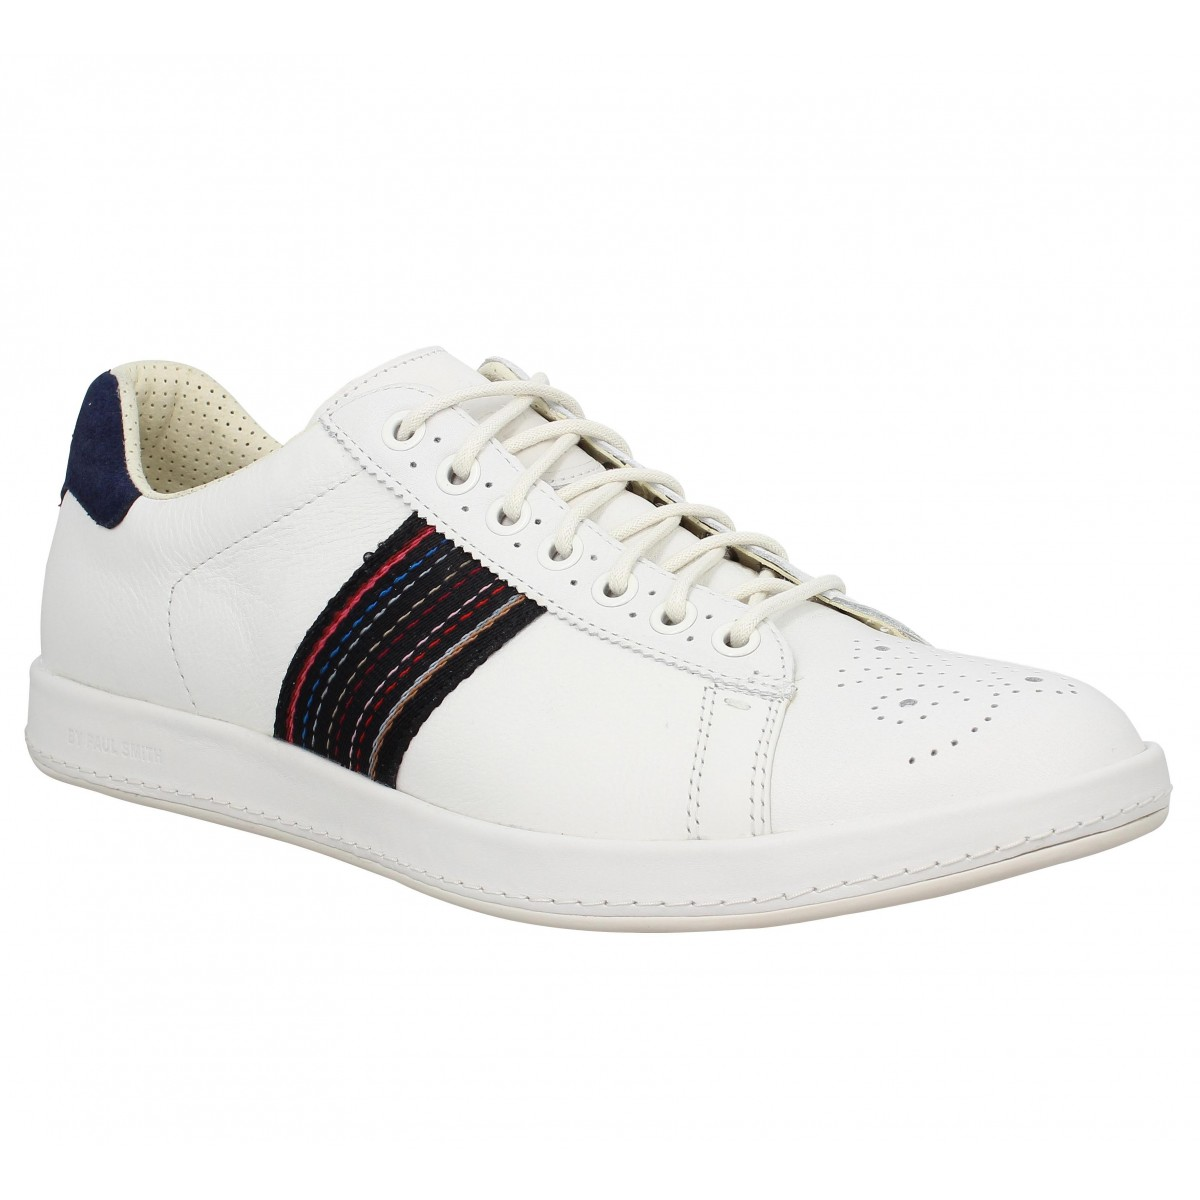 Homme PS By Paul Smith Sneakers Rabbit Cuir Noir Plus Grand